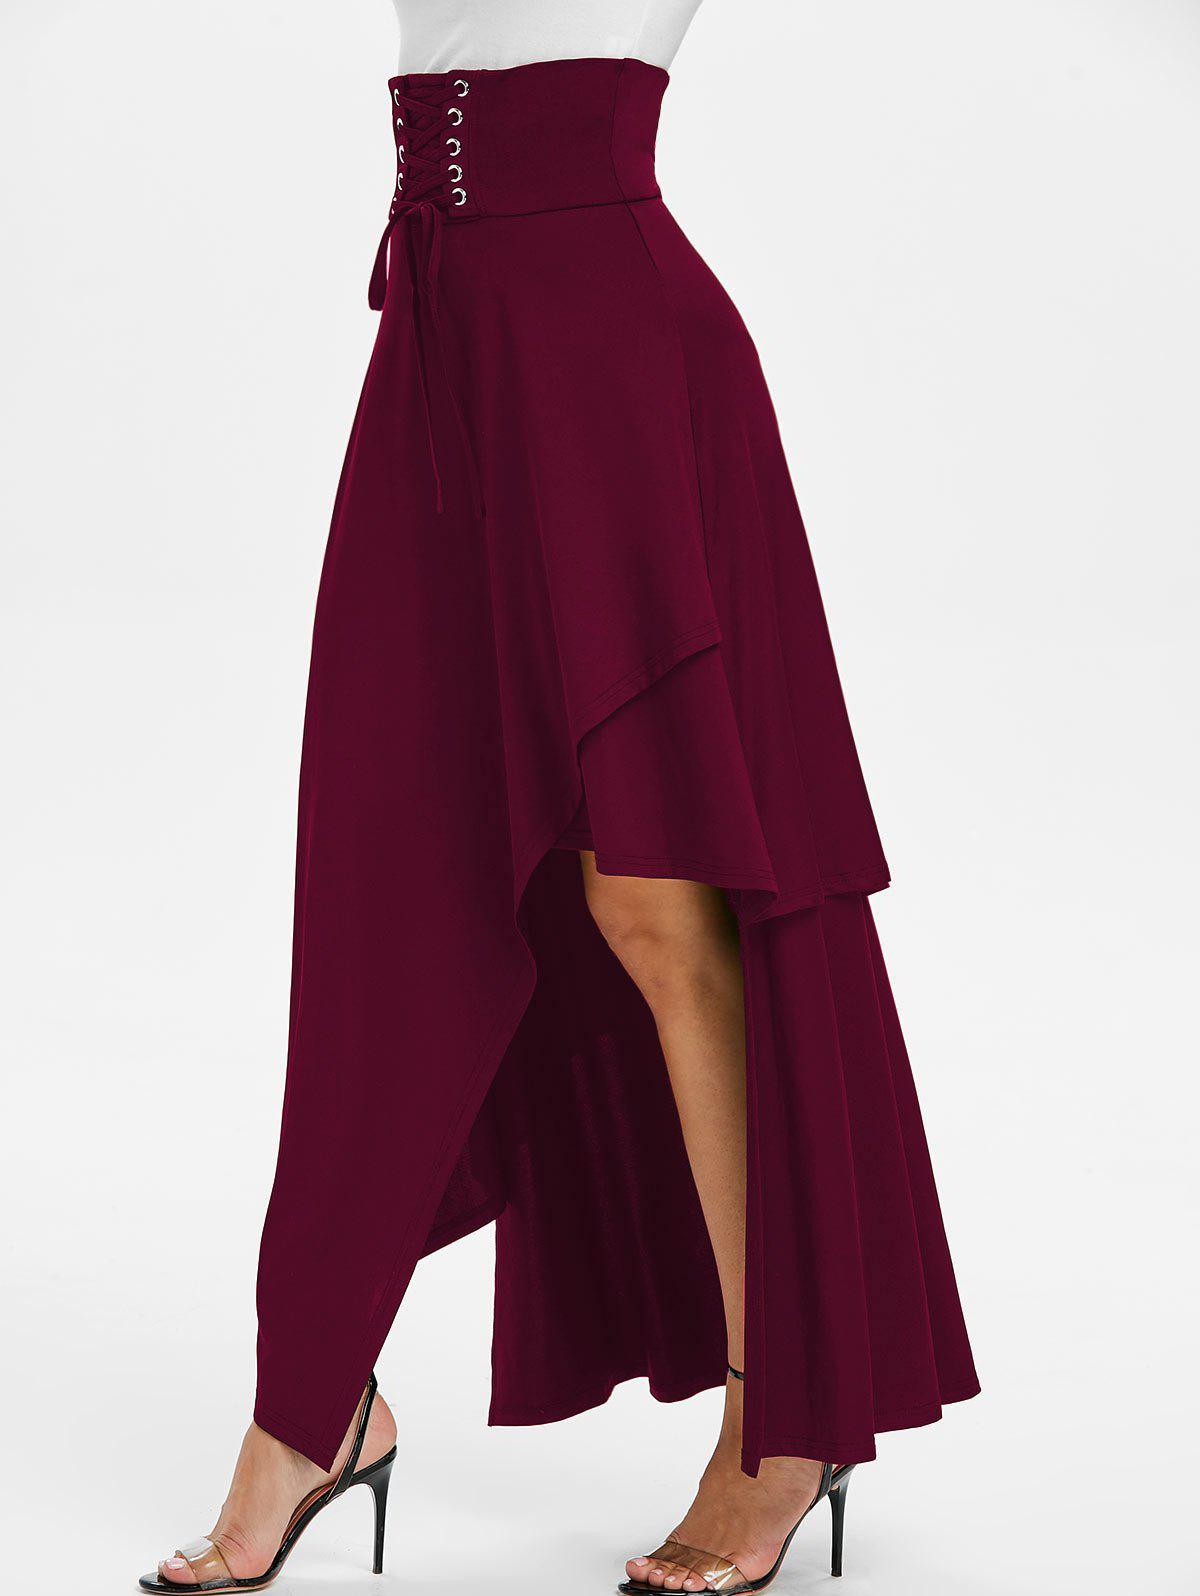 Shop High Waisted Asymmetric Lace-up Layered Maxi Skirt